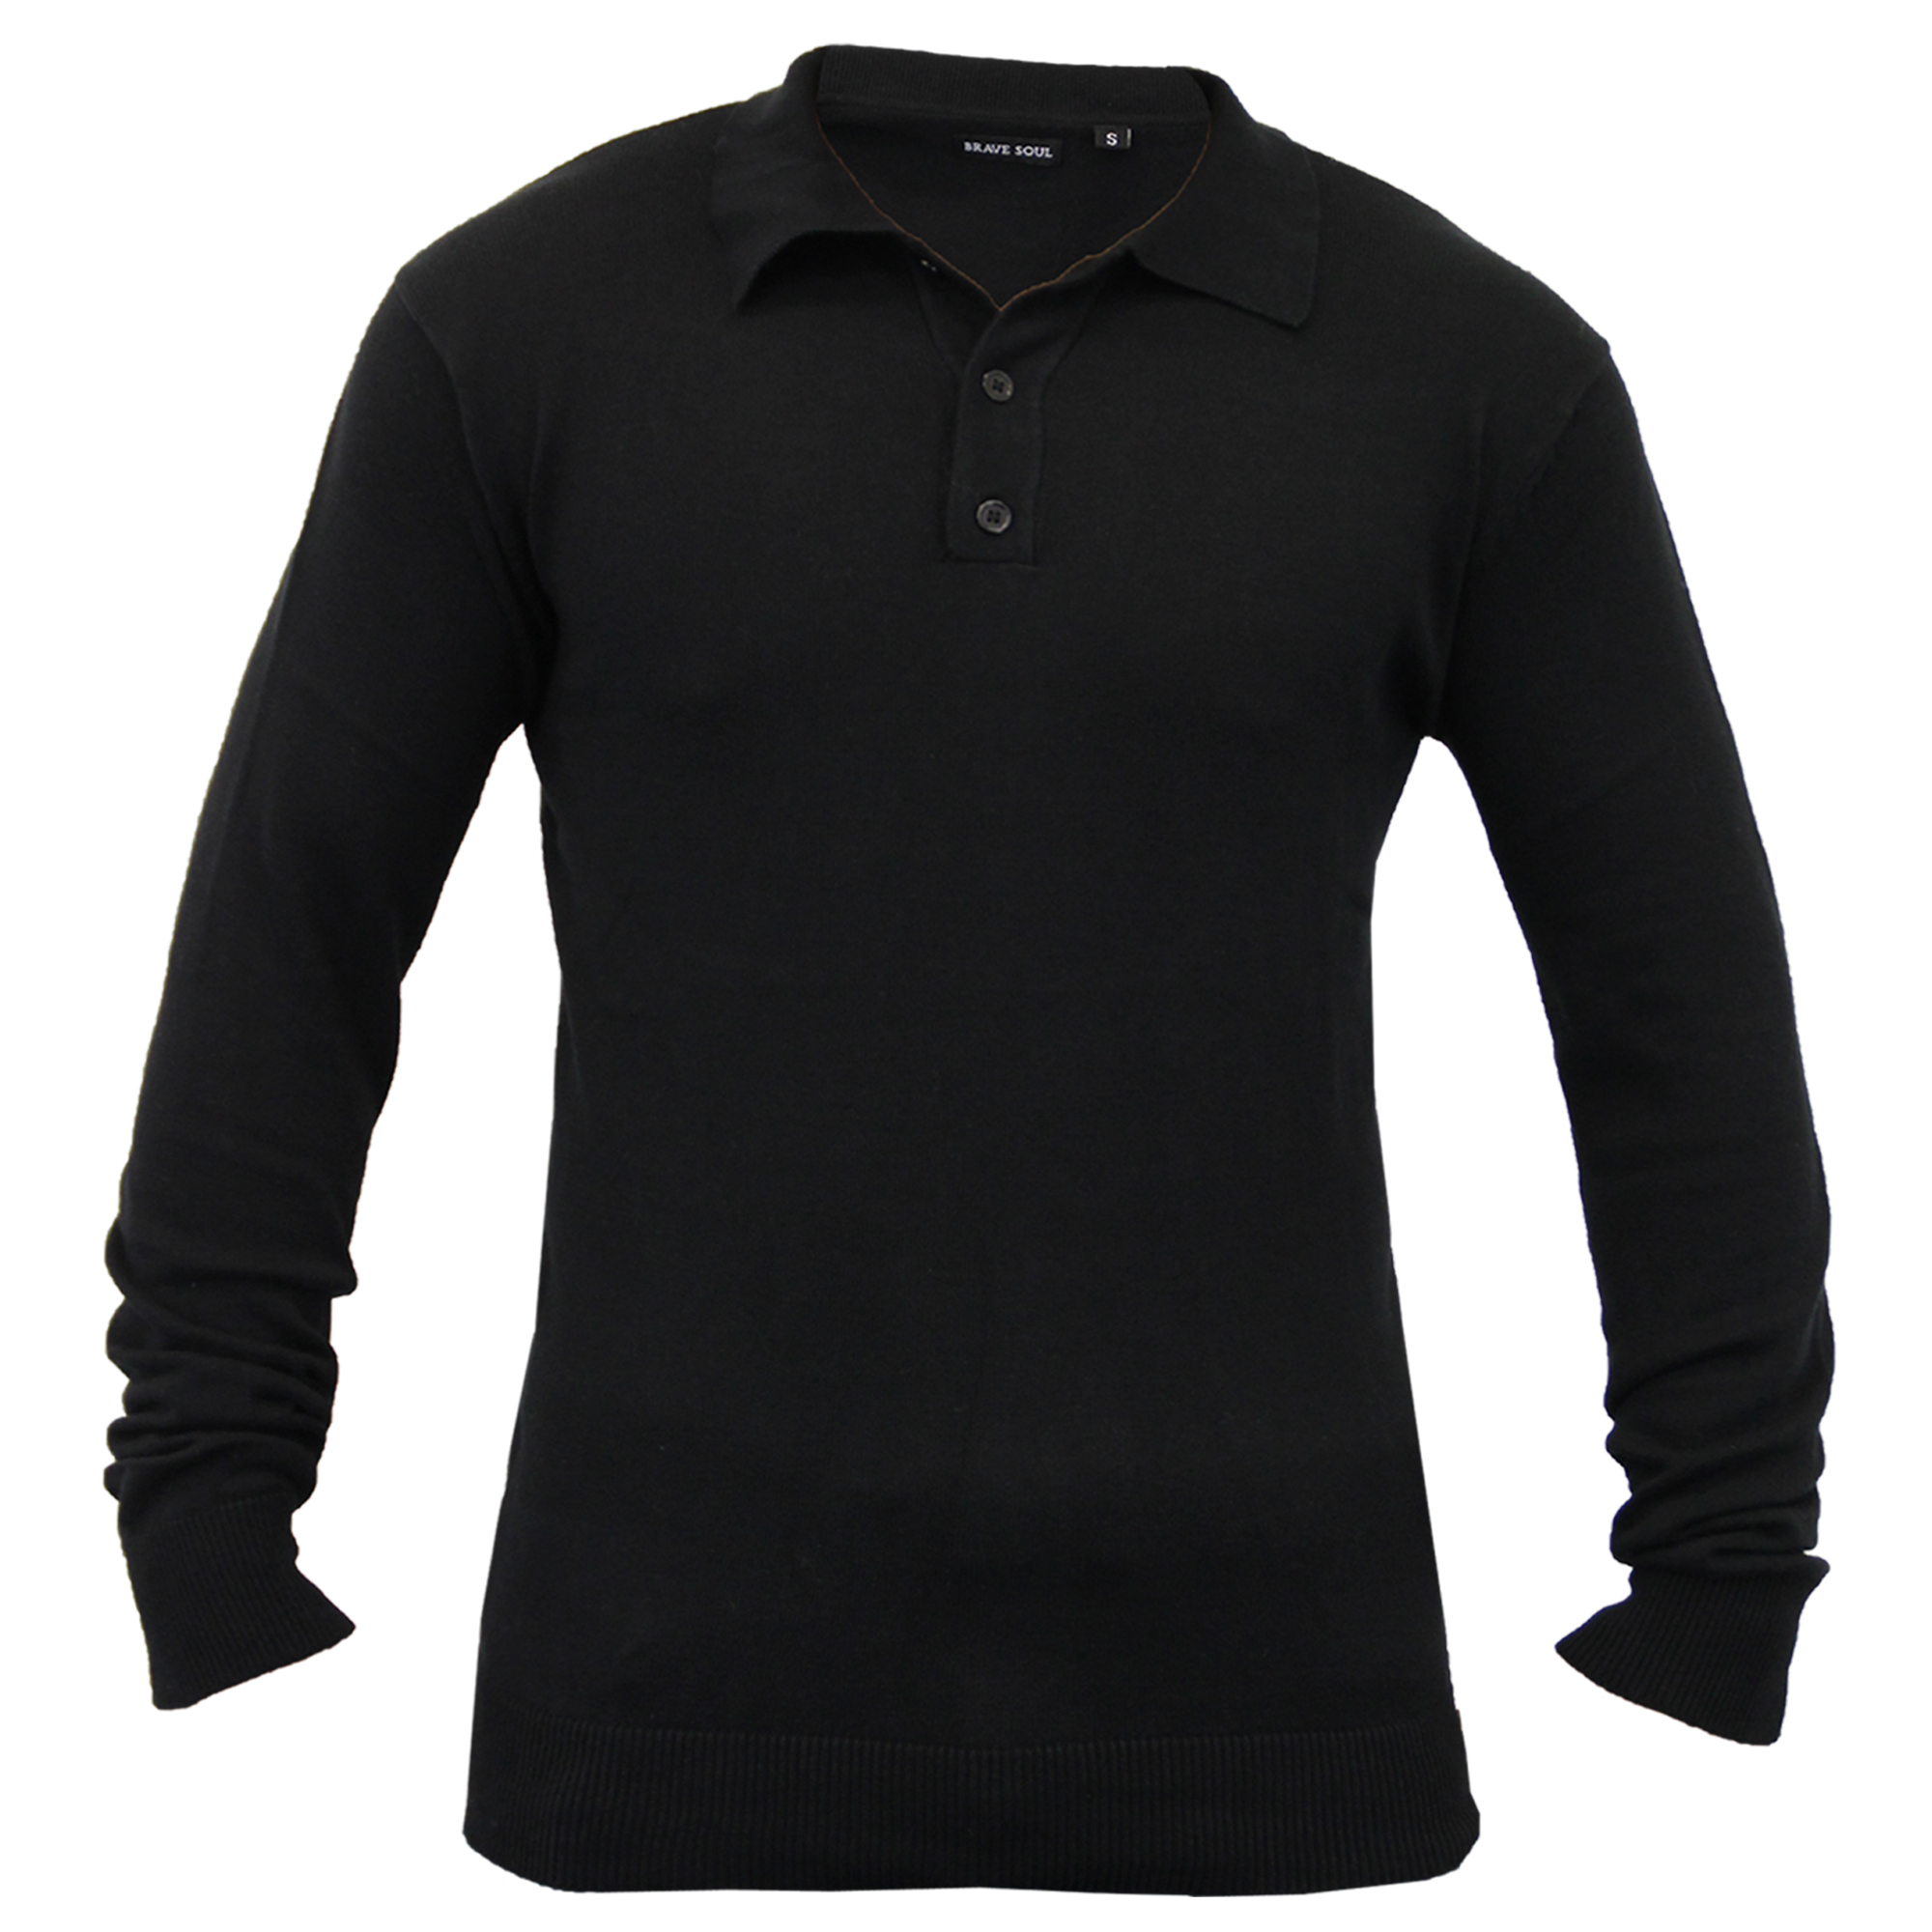 Mens-Knitted-Jumper-Brave-Soul-Polo-Top-Sweater-PLACKET-Pullover-Lightweight-New thumbnail 4